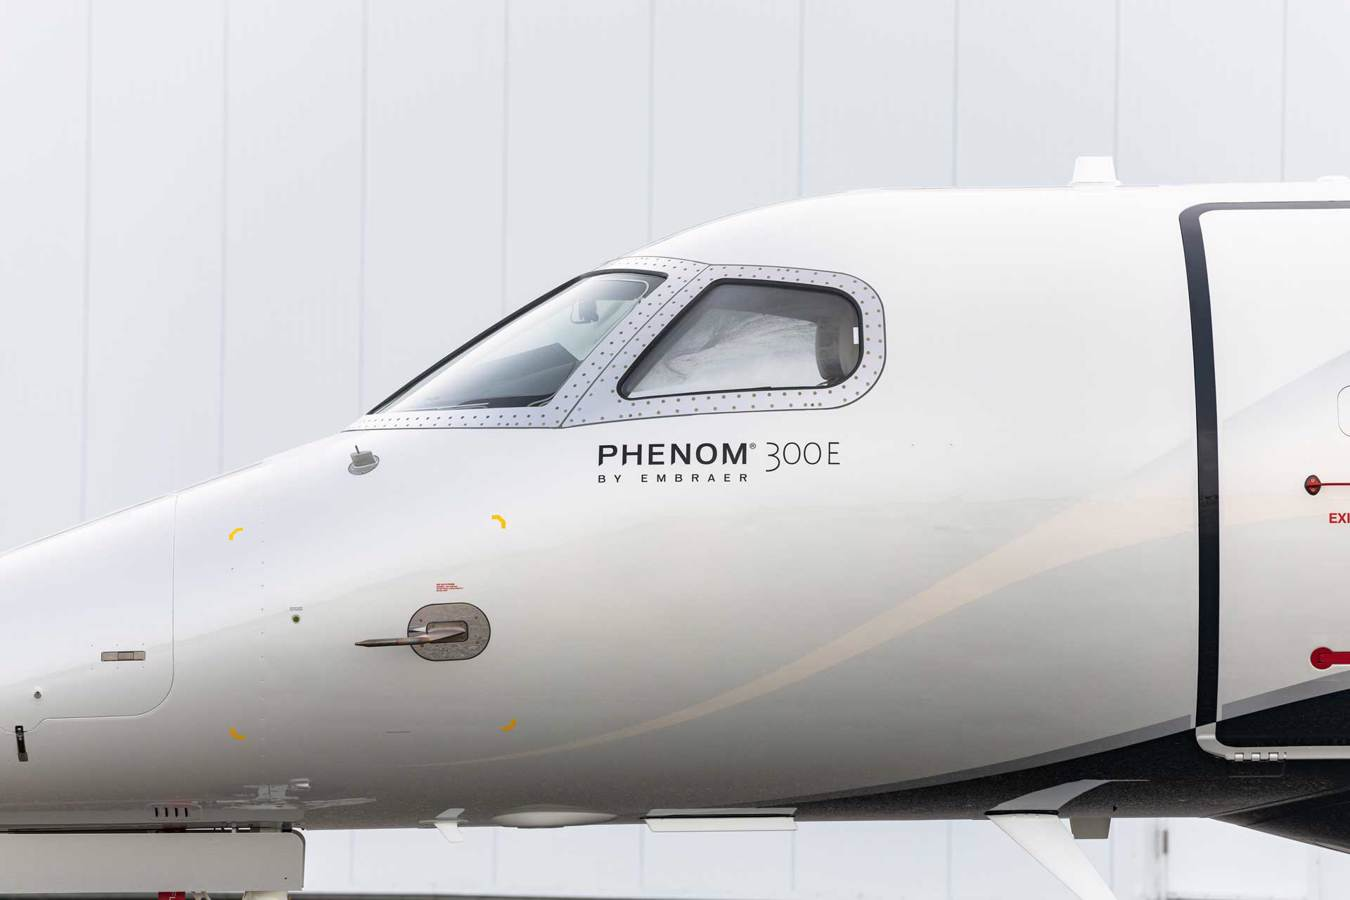 Phenom jets di Embraer.